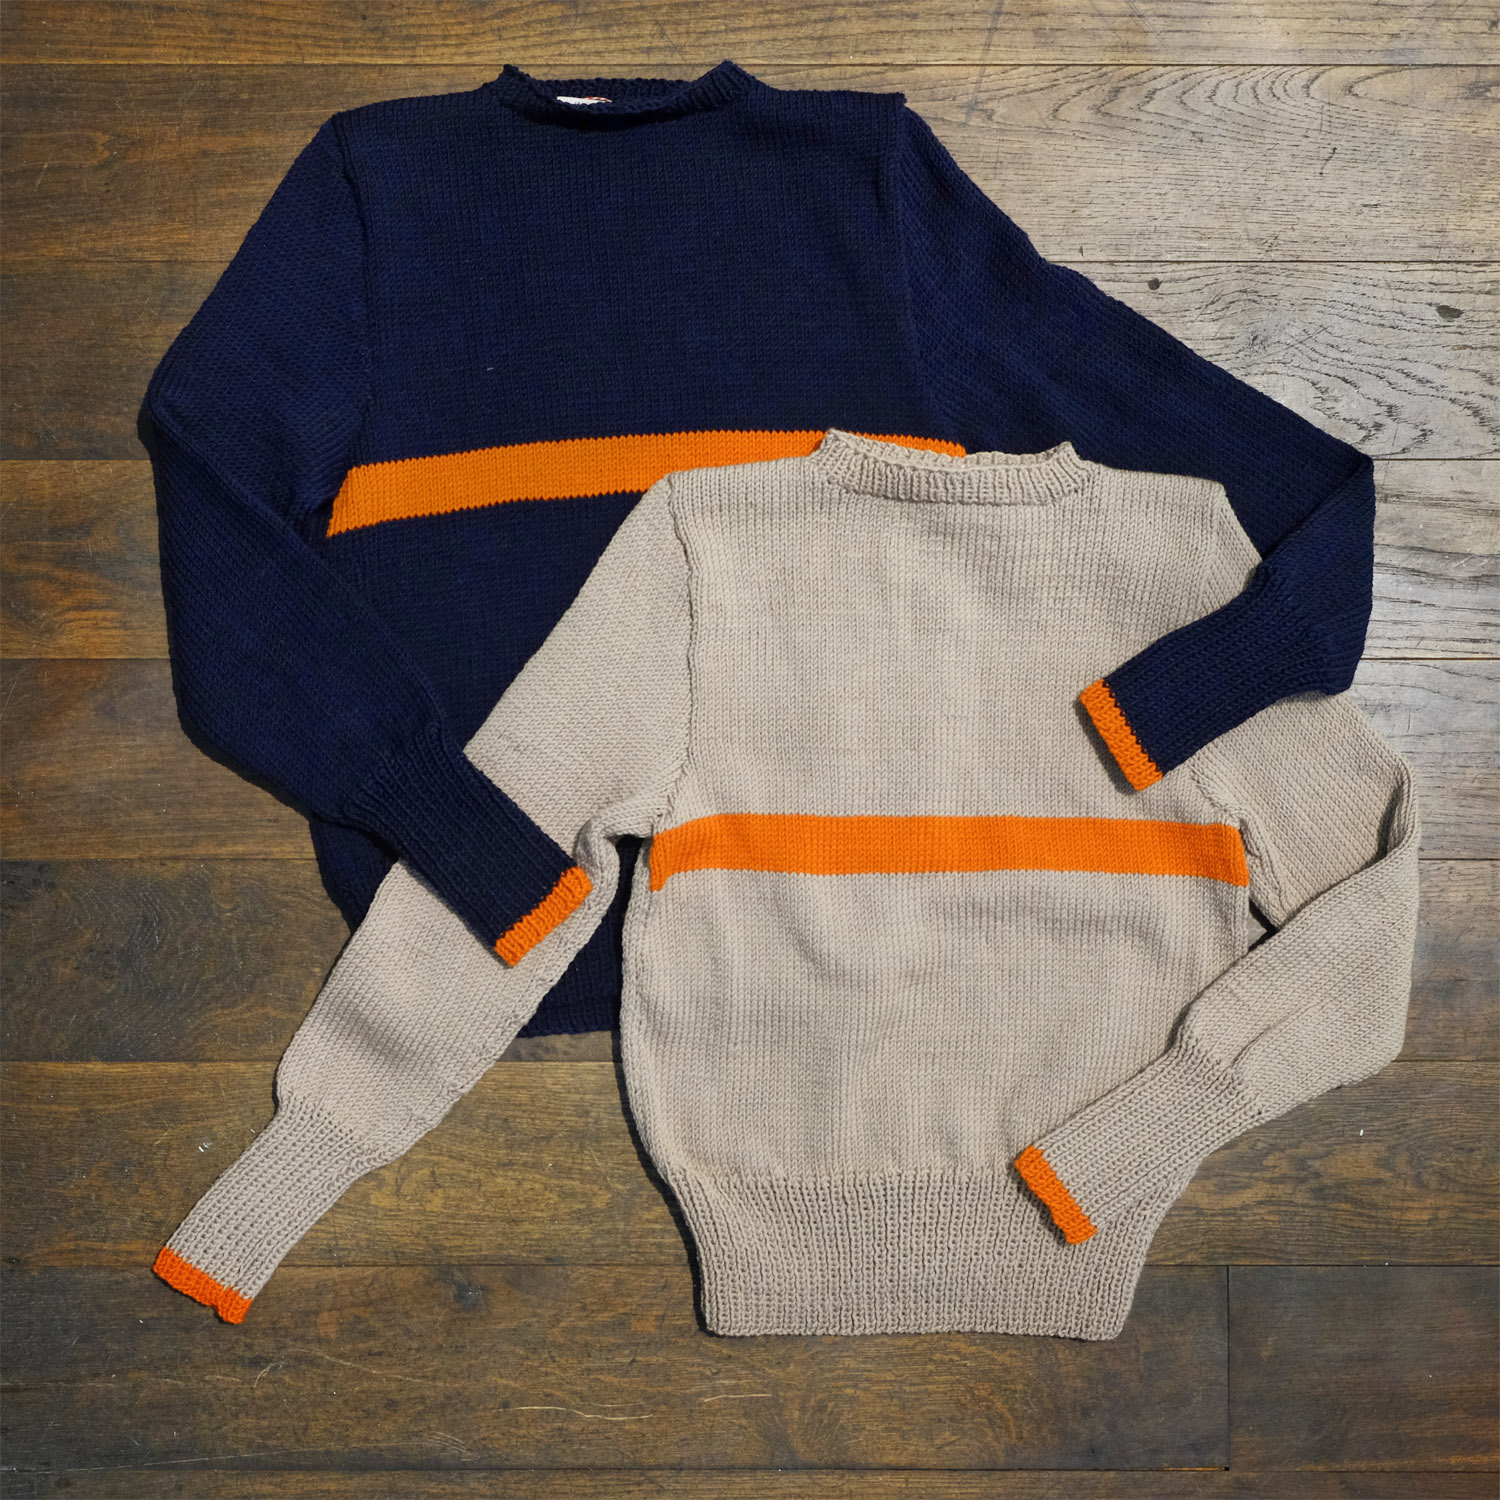 interbrigade-pullover-arbeiter-navy-kit-grau-streifen-orange